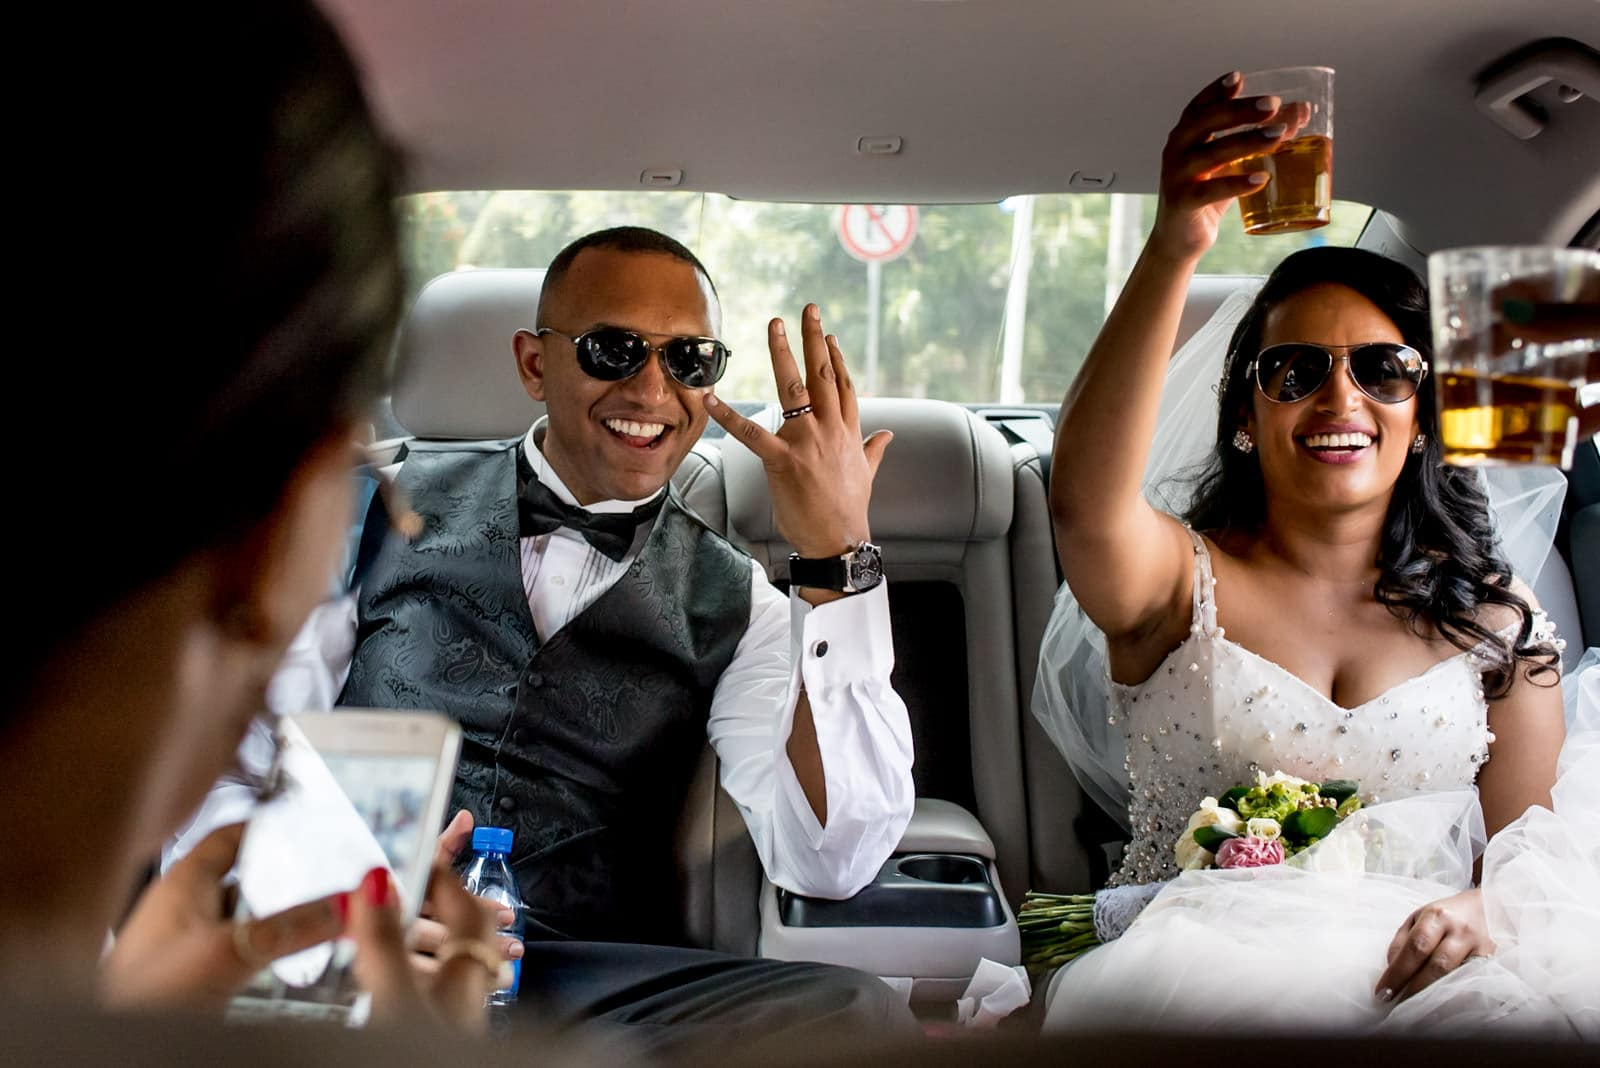 Ethiopian bride and groom drinking Johnny Walker Black whisky in a limo in Addis